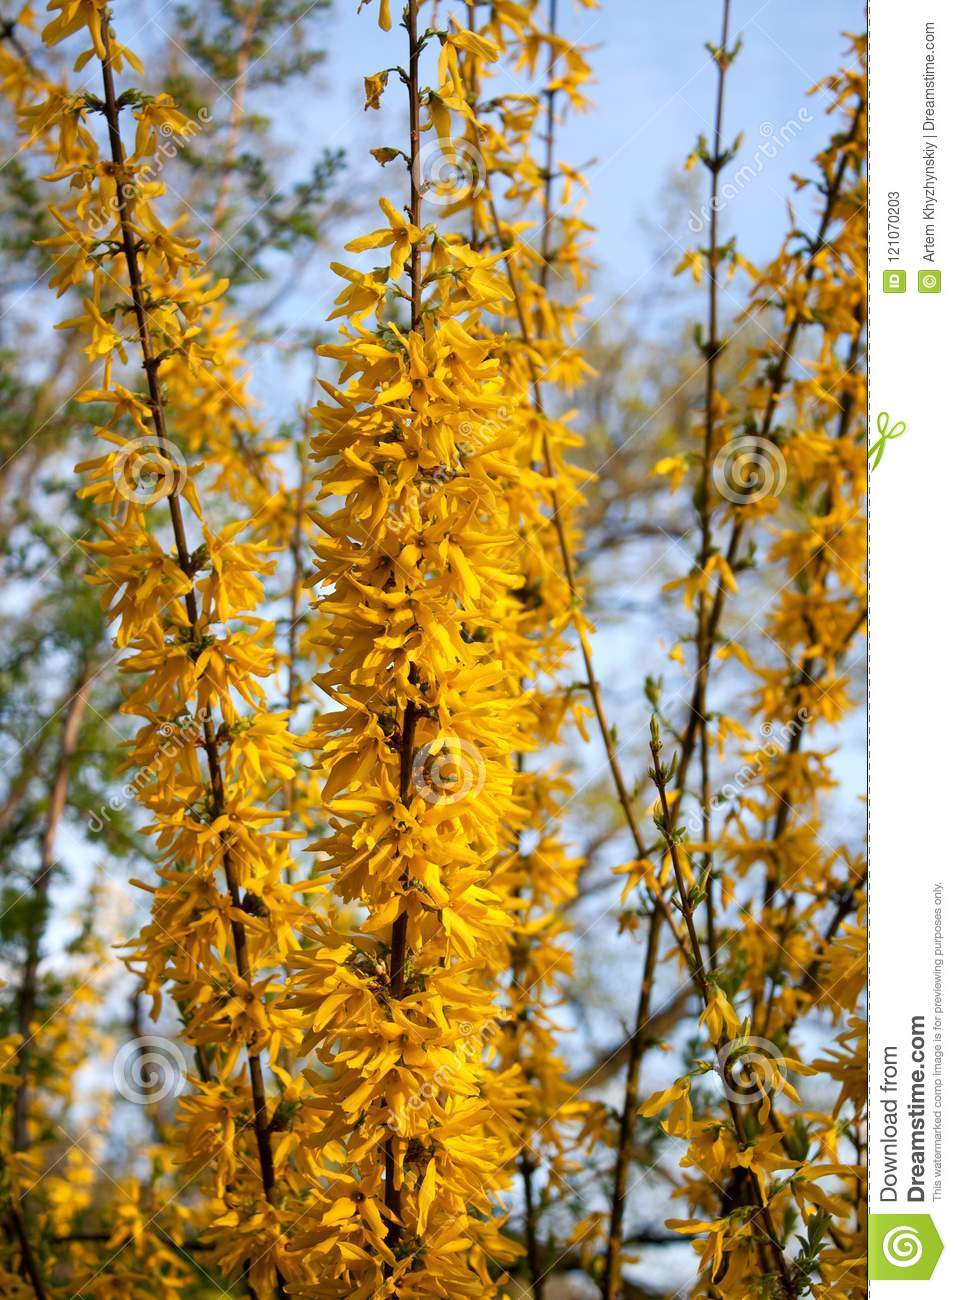 Forsythia Shrub With Bright Yellow Flowers Stock Image Image Of